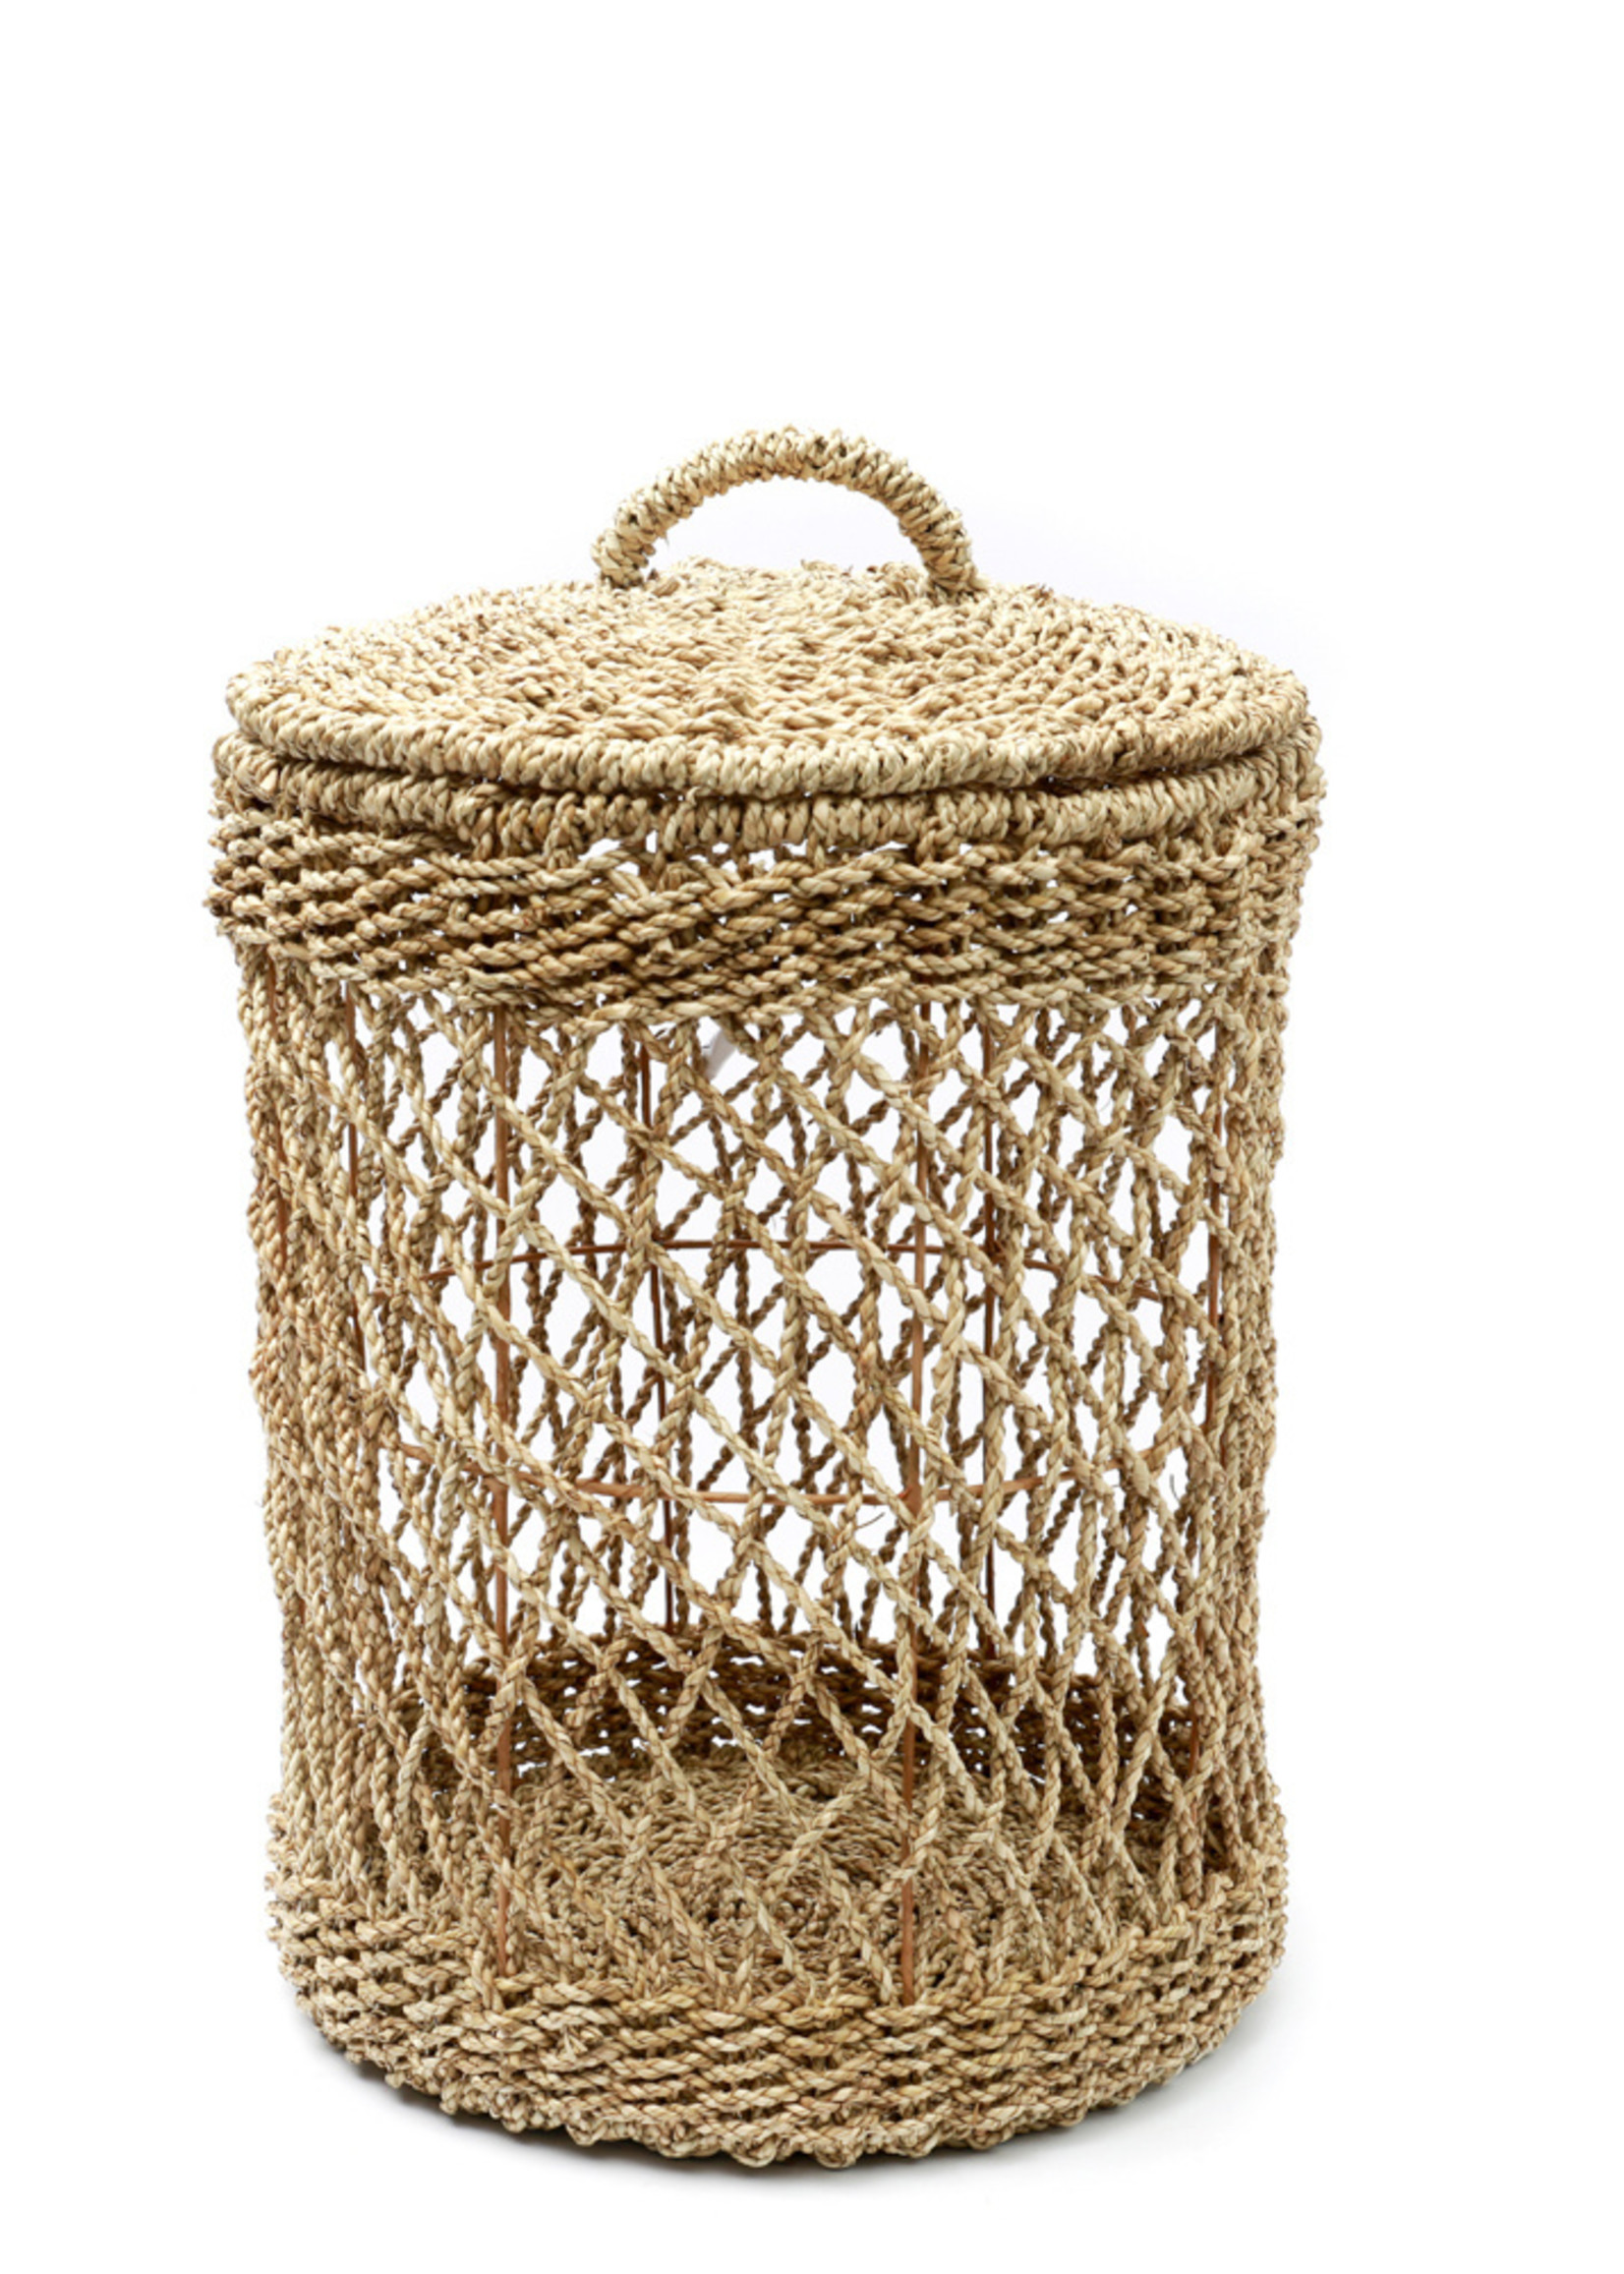 The Laundry Basket - Natural - M